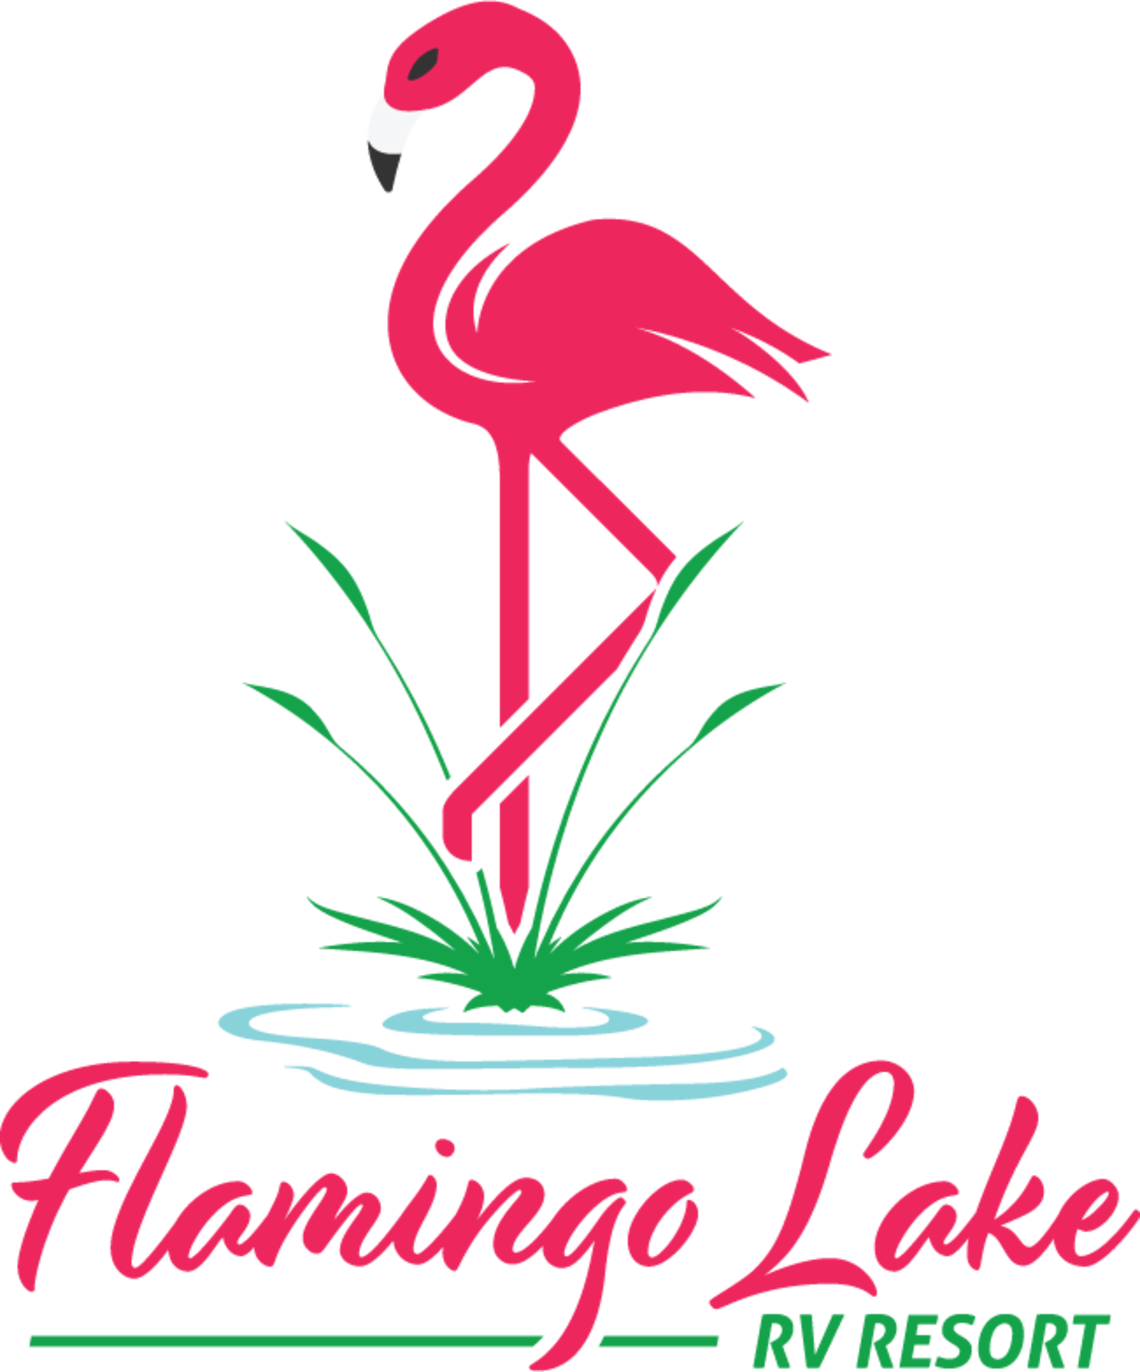 Flamingo lake logo